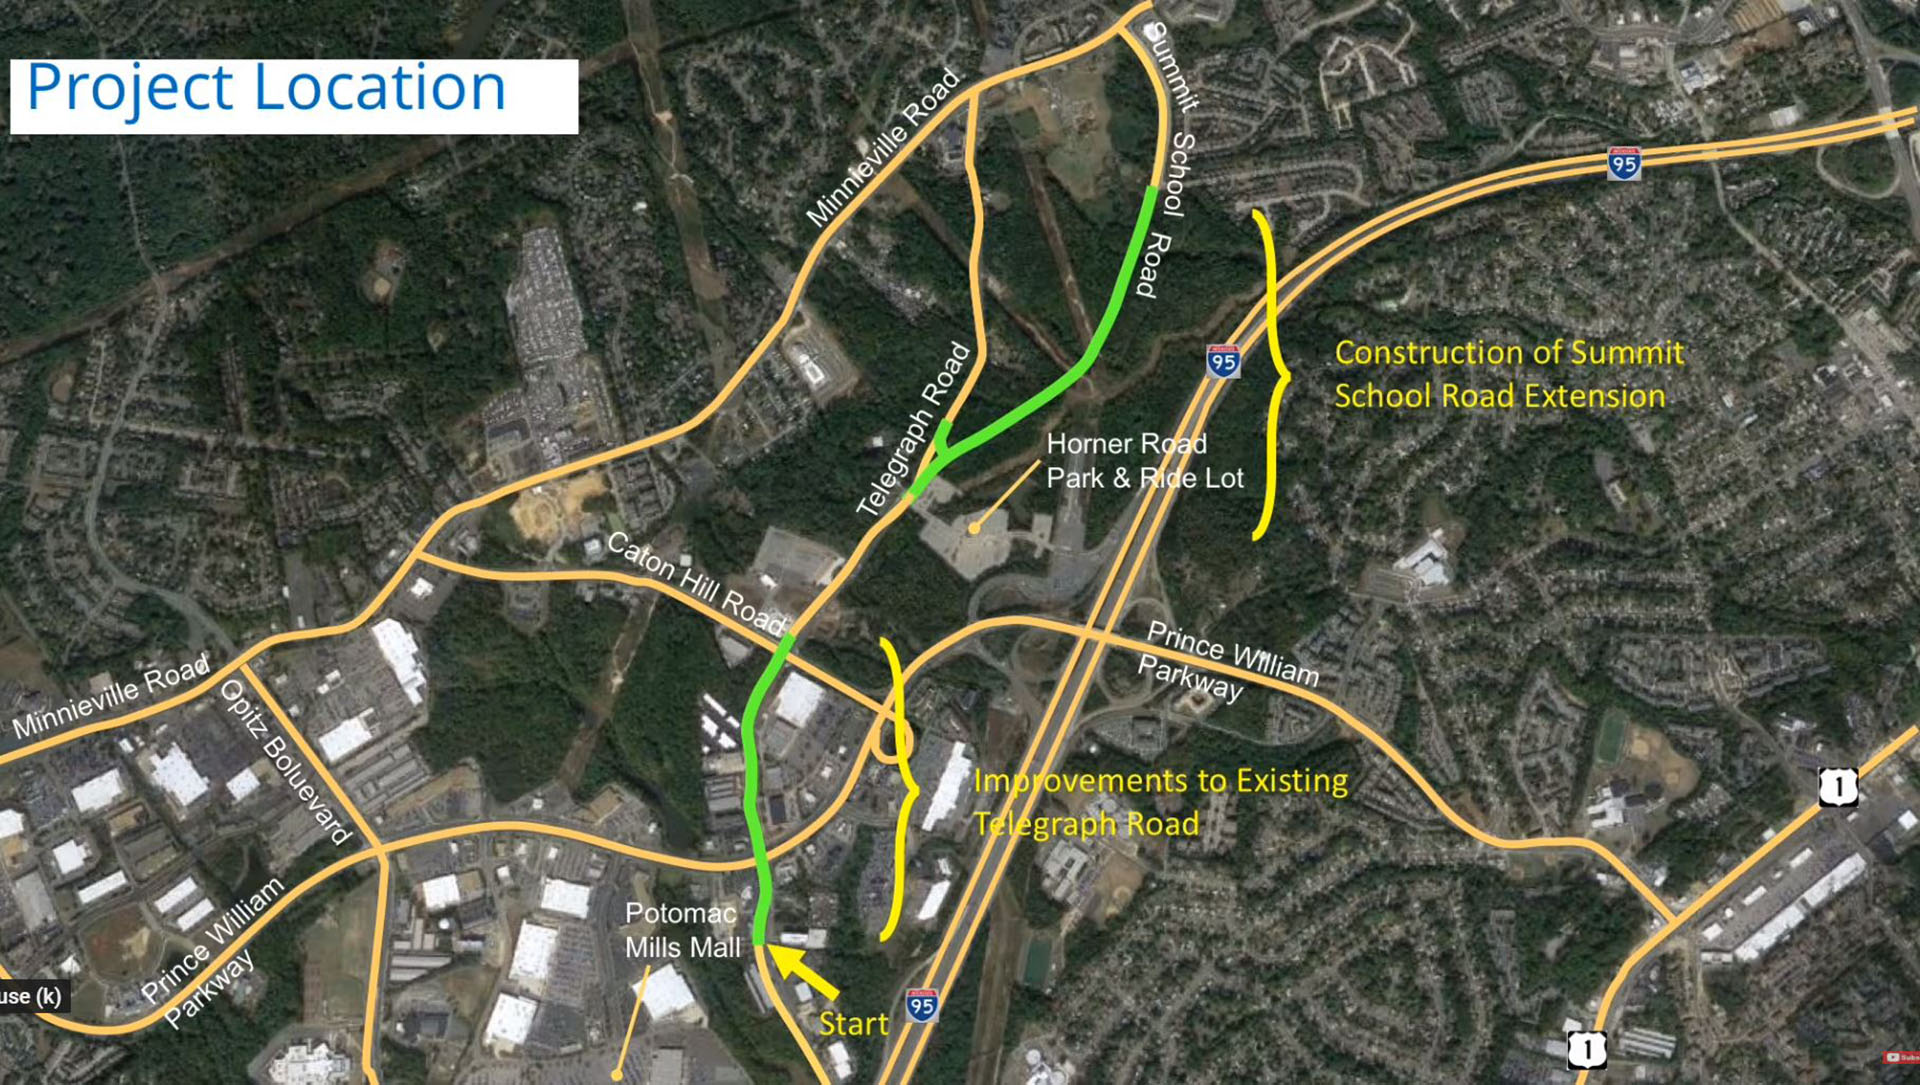 Feedback on Occoquan District road projects sought